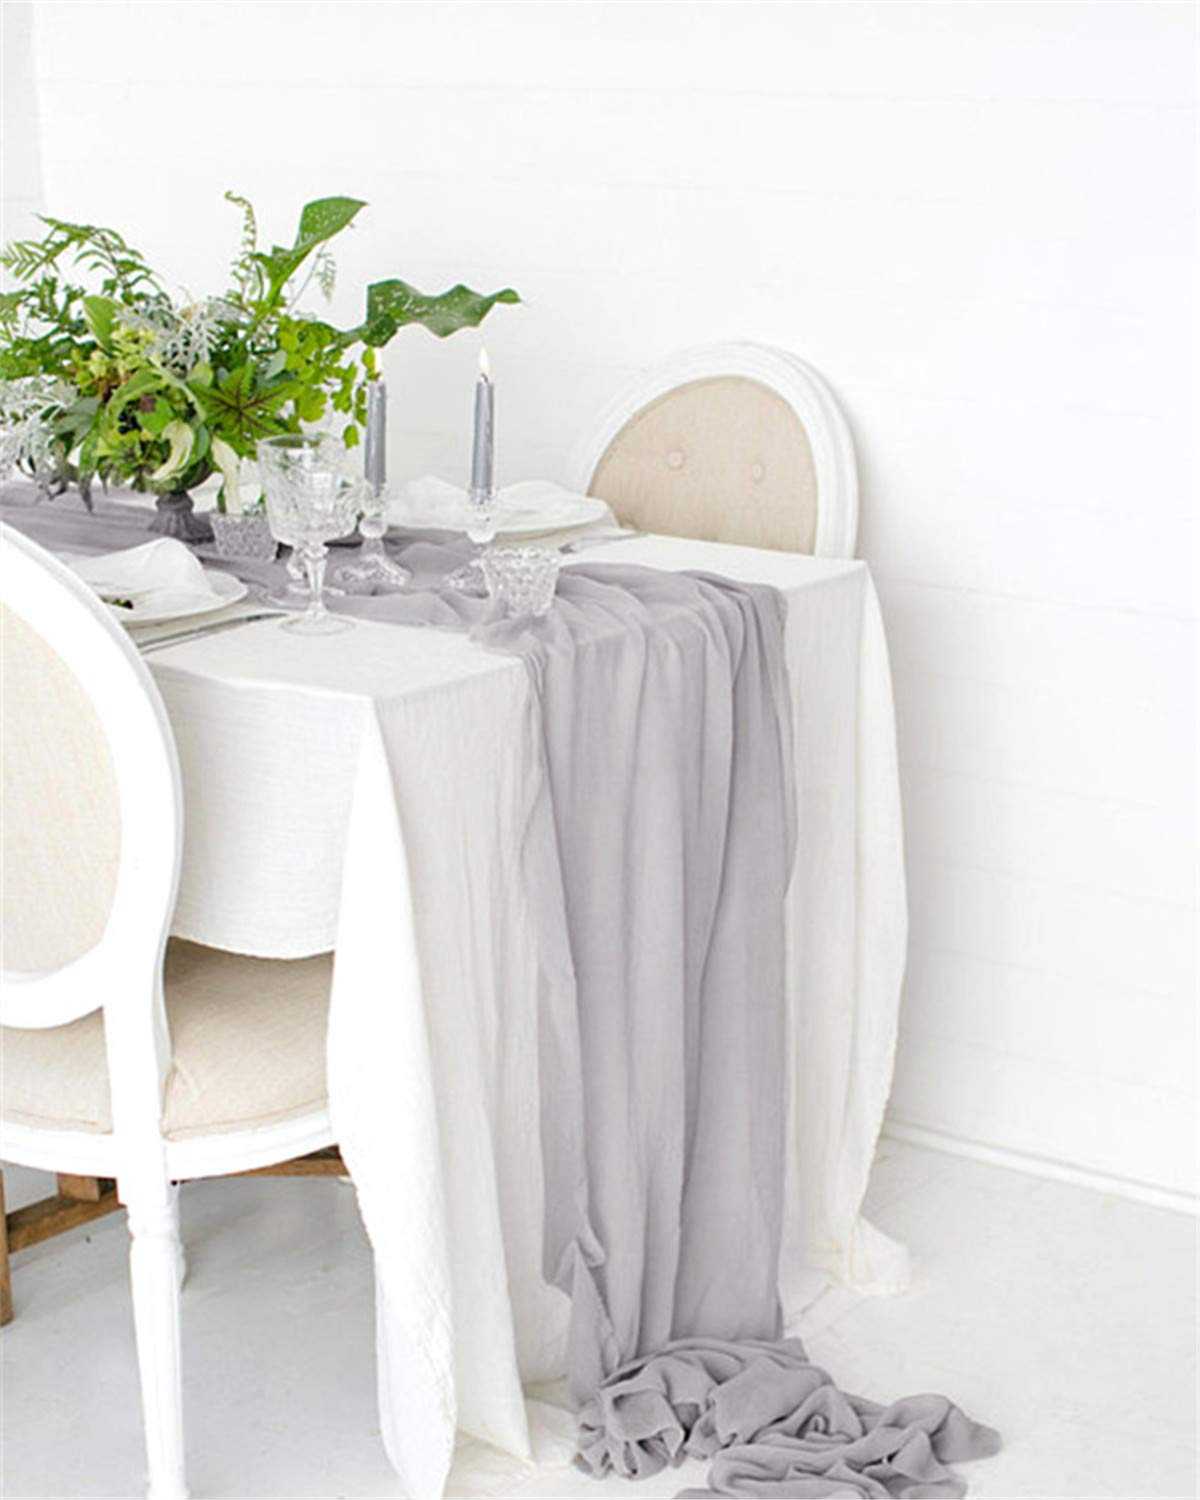 B-COOL 5 Piece of Gray Elegant Soft Chiffon Table Runner 27 x120 Inches Chiffon Wedding Table Tunners for Rustic Romantic Wedding Birthday Party Banquet Sweets Tables Decoration by B-COOL